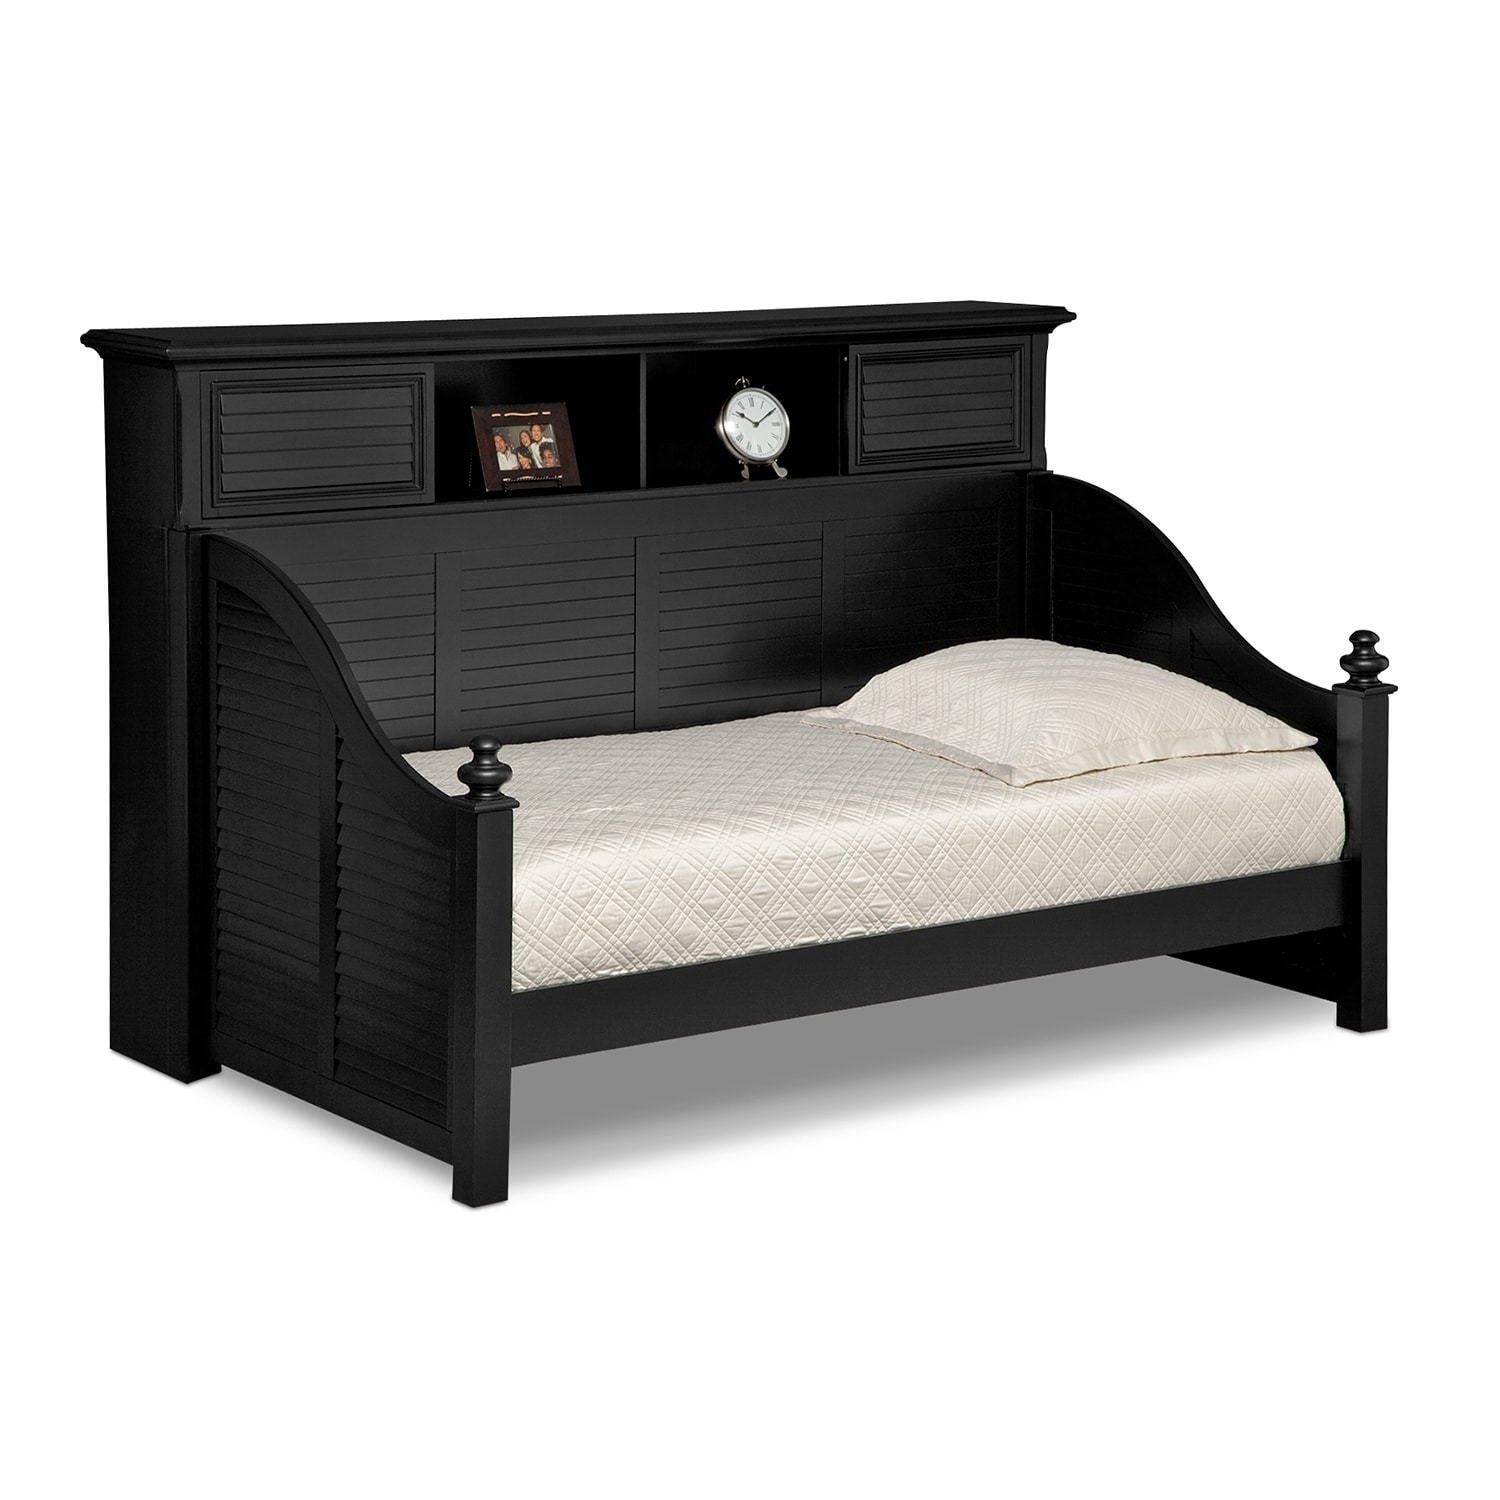 Kids Furniture - Seaside Black II Bookcase Daybed